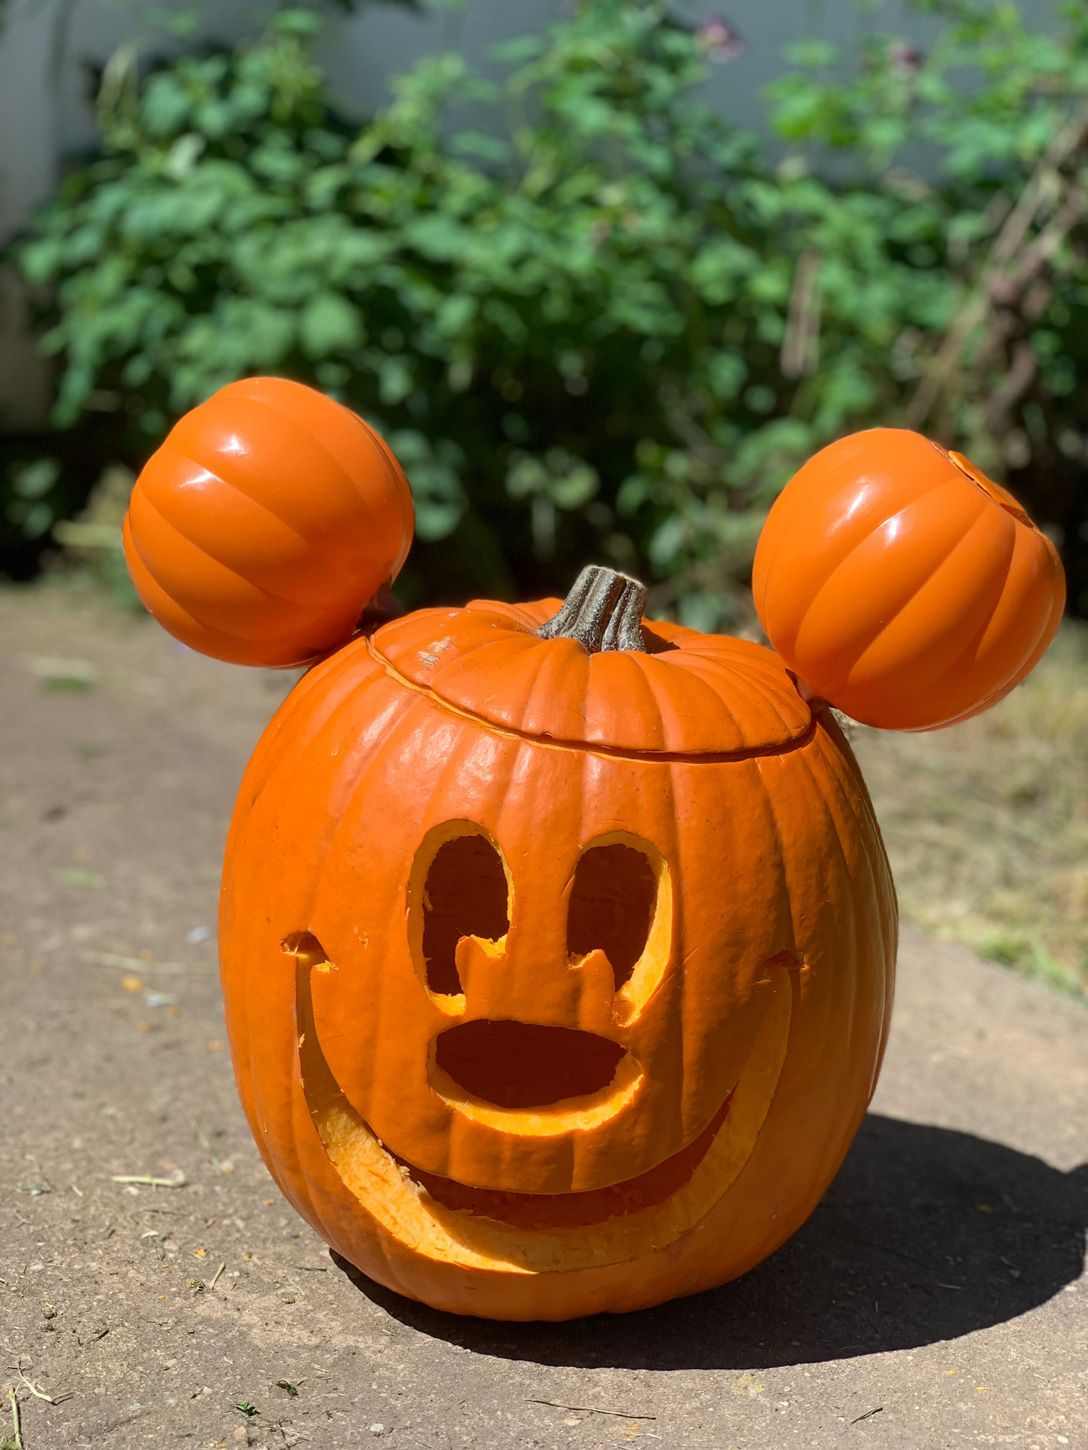 How to make a Mickey Mouse Halloween Pumpkin